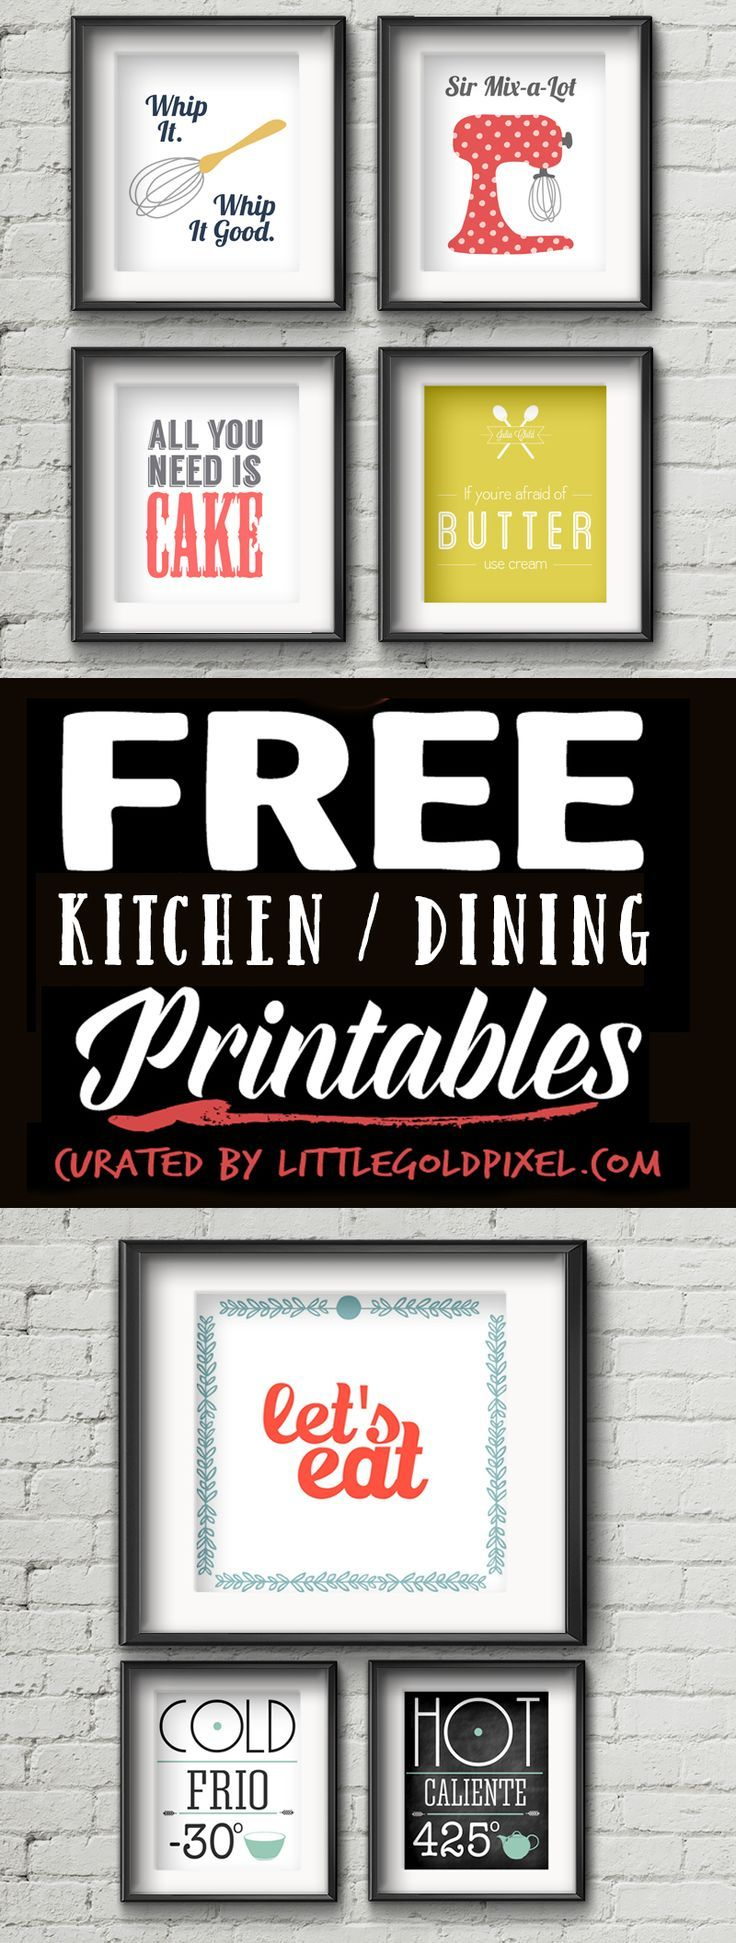 Kitchen wall hanging ideas - 20 Kitchen Free Printables Wall Art Roundup